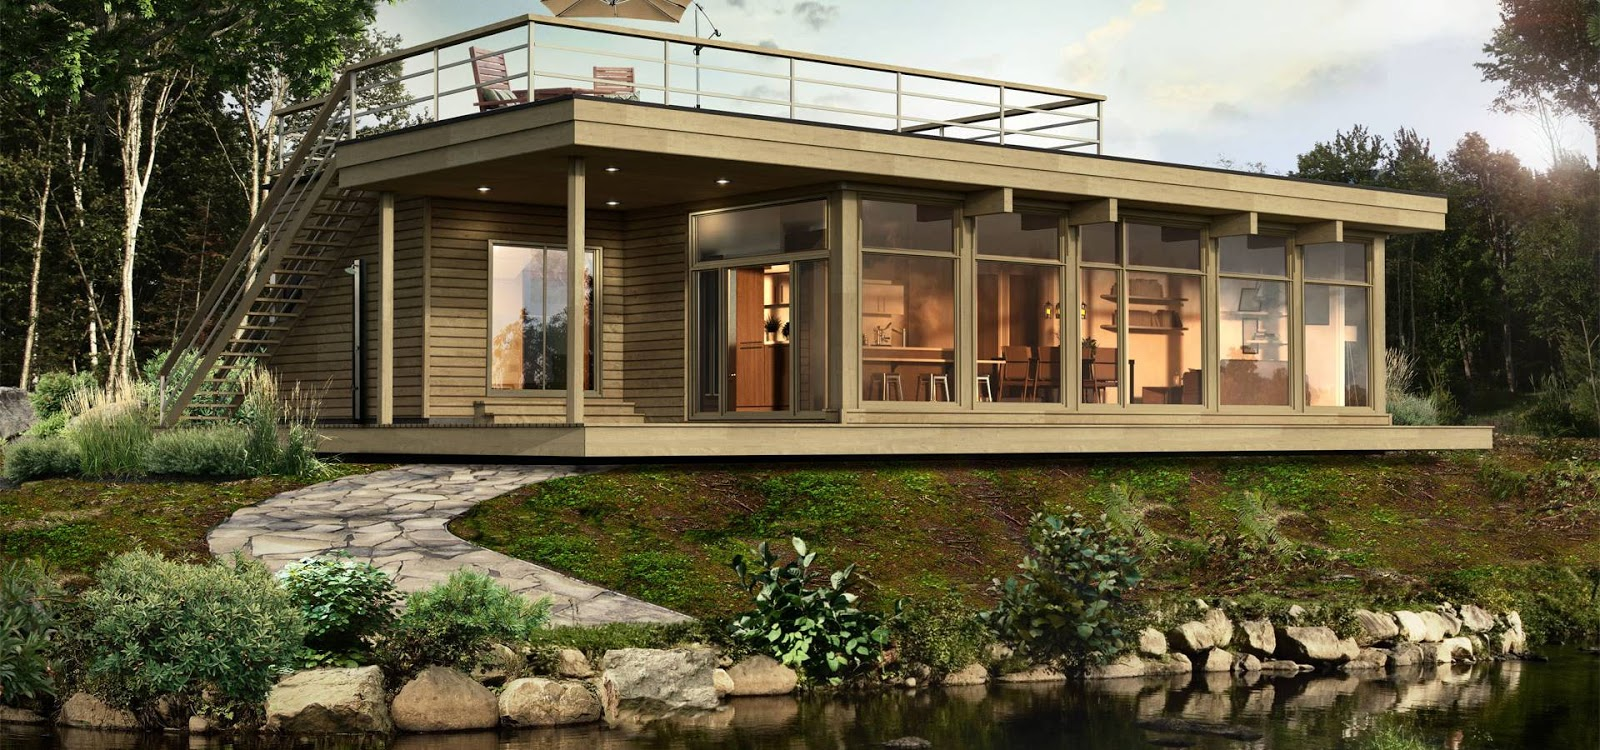 Prefab homes and modular homes in canada bonneville homes - How are modular homes built ...